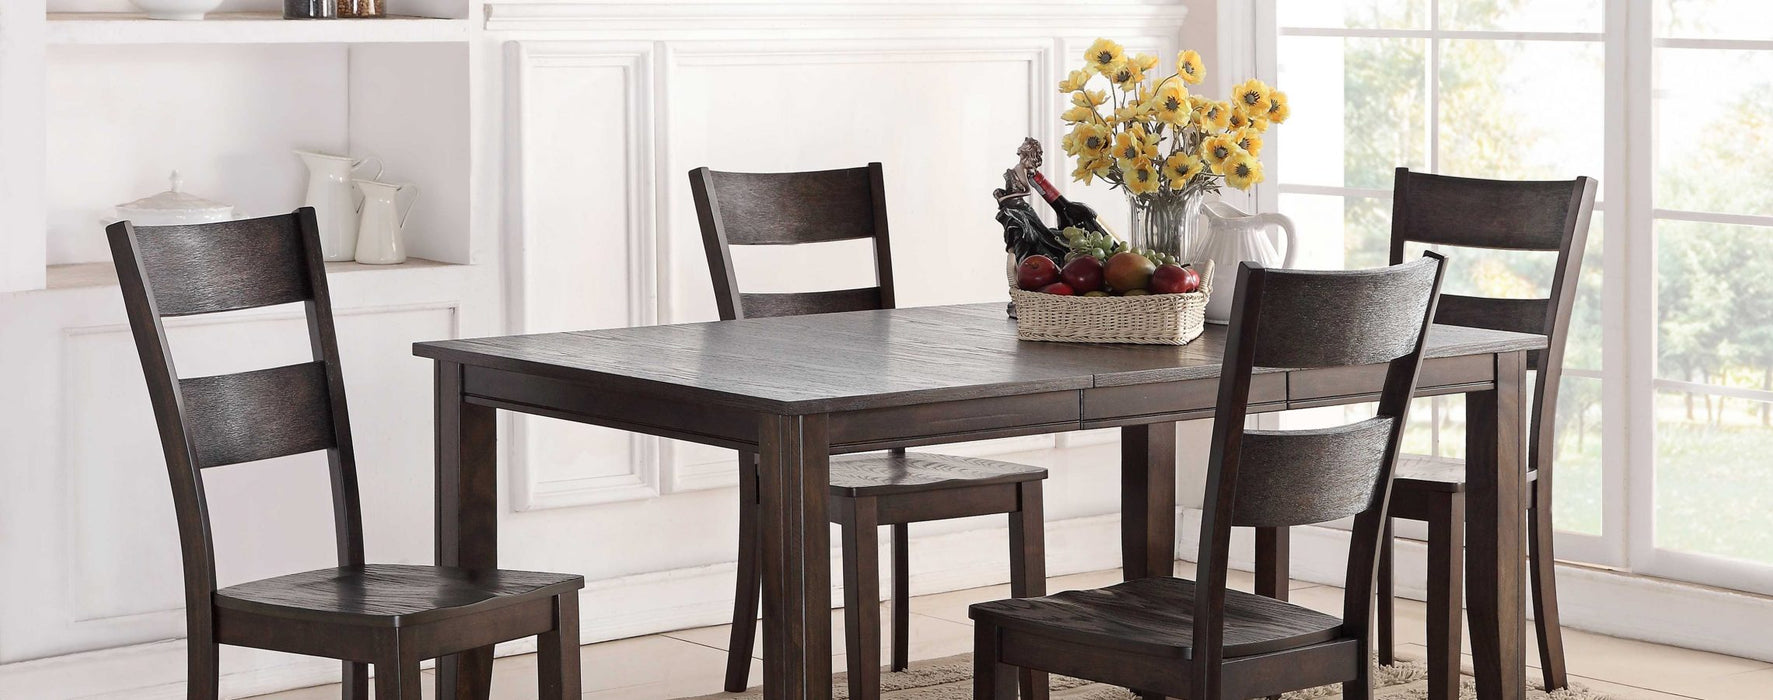 Wirebrush Dark Oak Dining Table